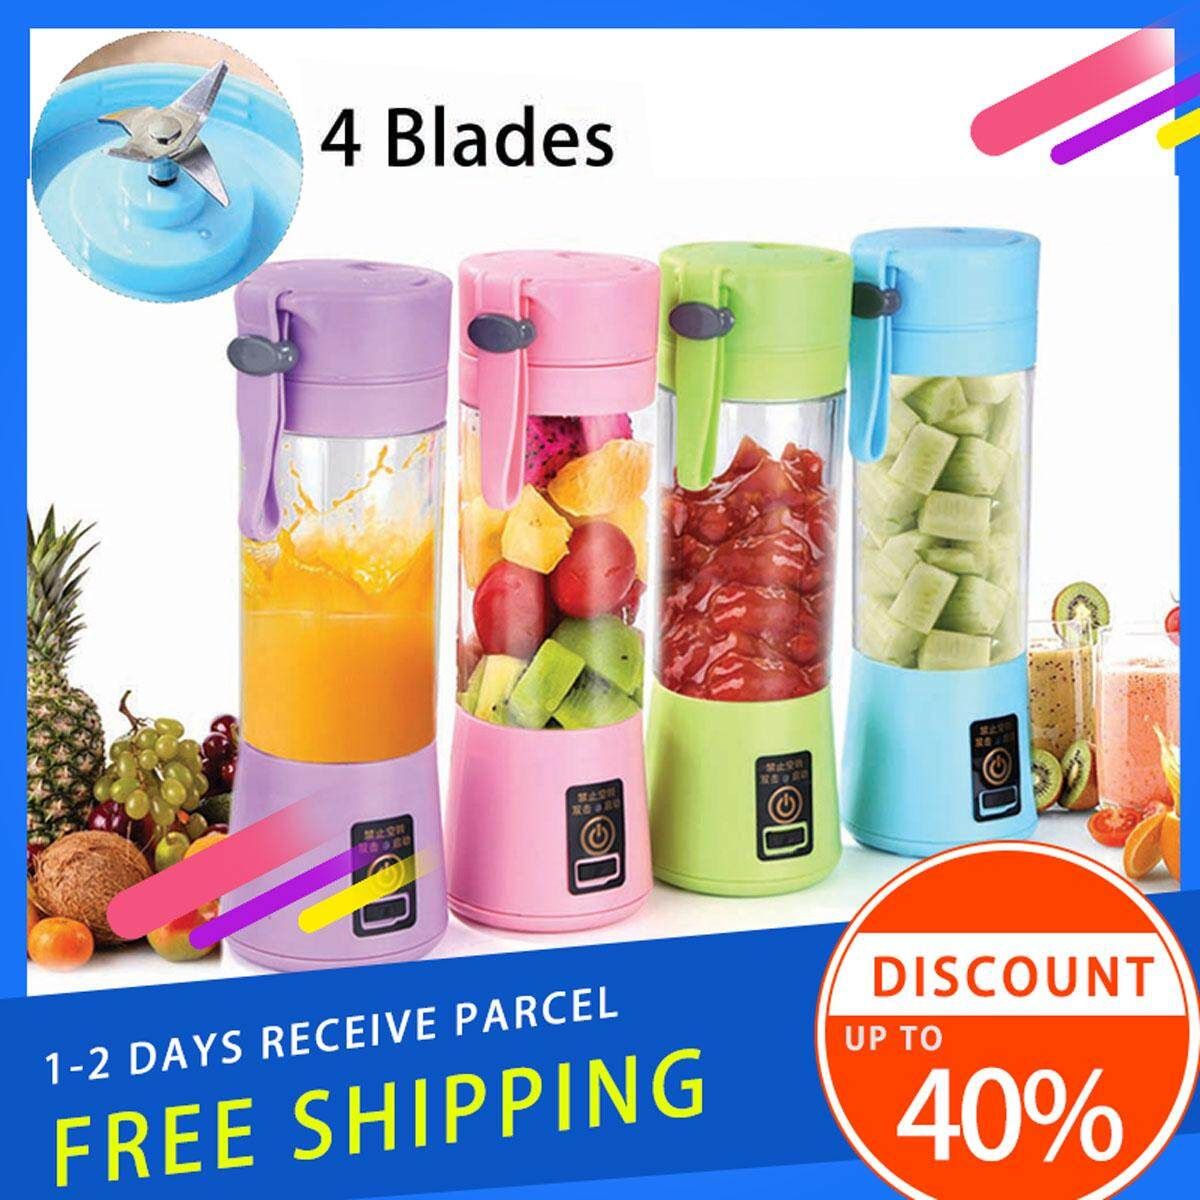 Delly Portable Fruit Juicer Blander Bottle 4 Blades Rechargeable USB Charging for Outdoor office GYM fitness – Pink FJ-PK4